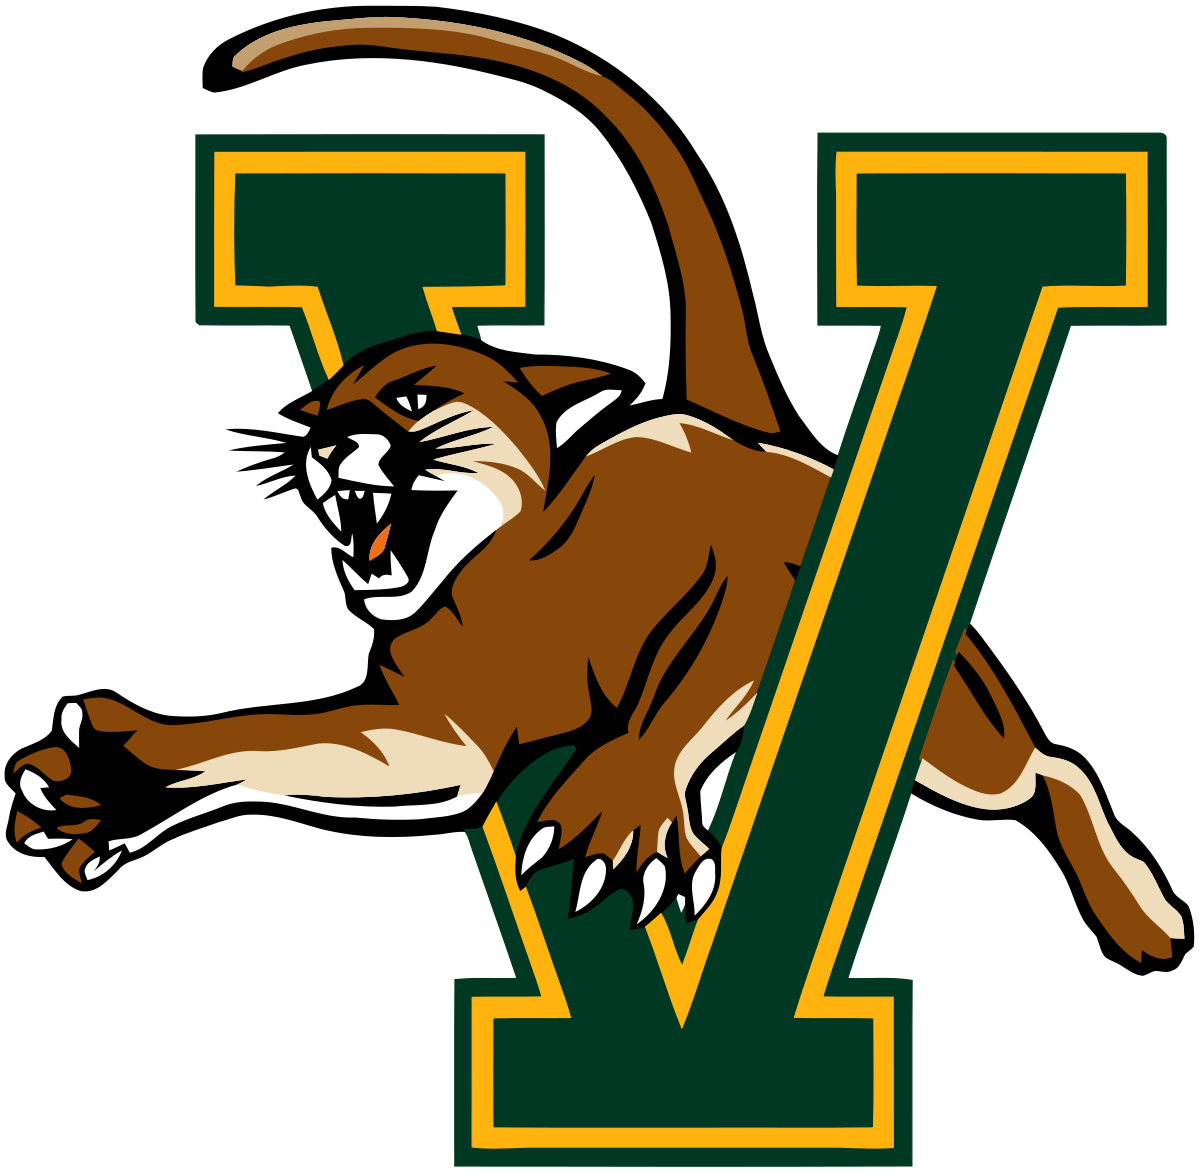 Reading cat clipart freeuse stock Know Thy Enemy: UVM vs. Purdue | Live Culture freeuse stock